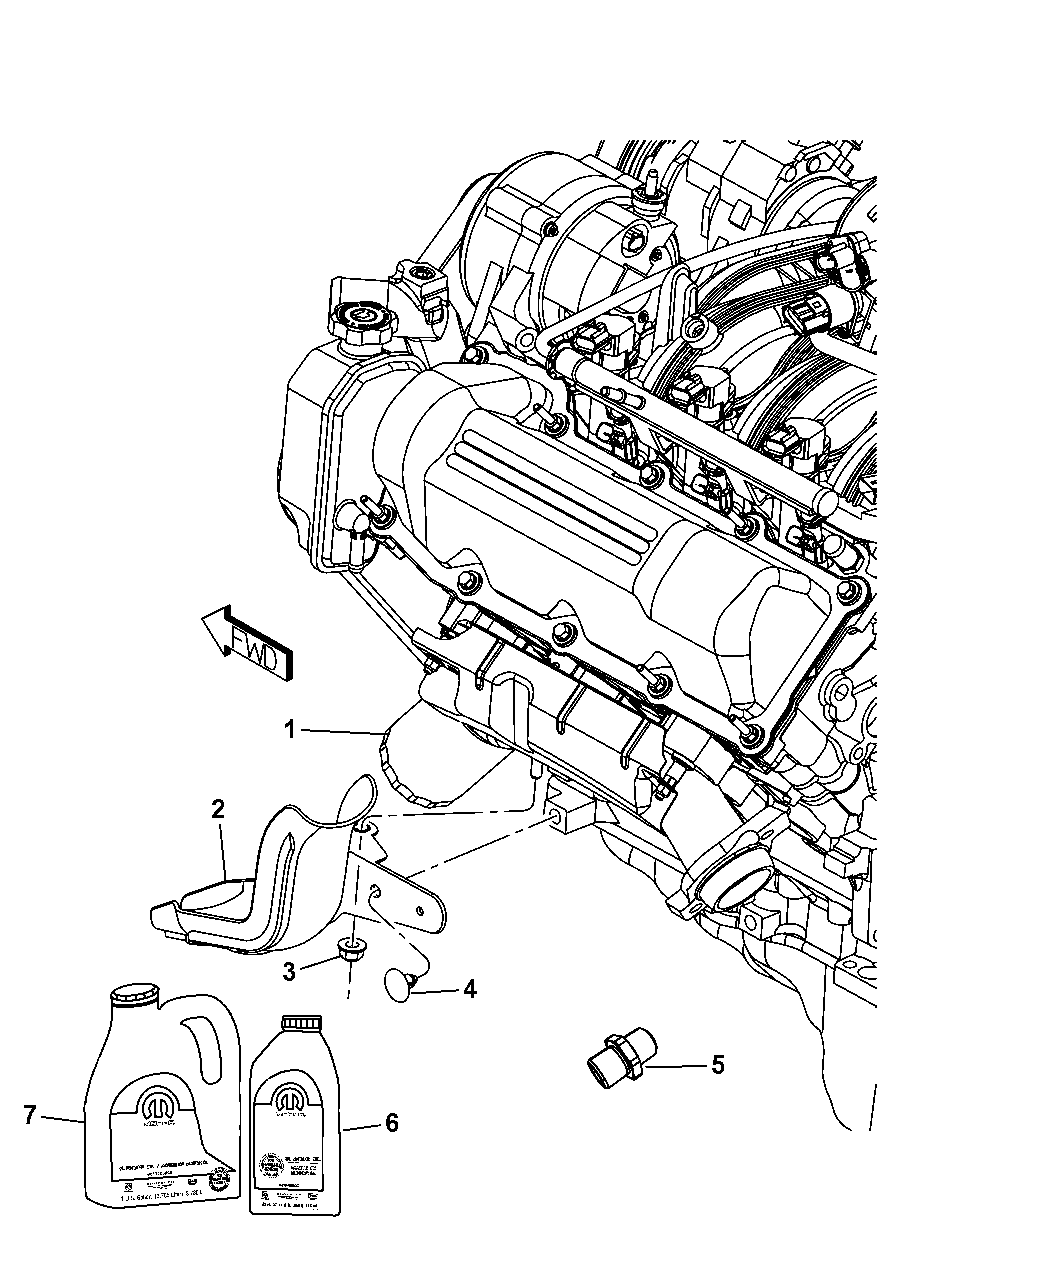 2012 Jeep Liberty Engine Oil Filter Housing Adapter And Splash Guard Diagram Thumbnail 1